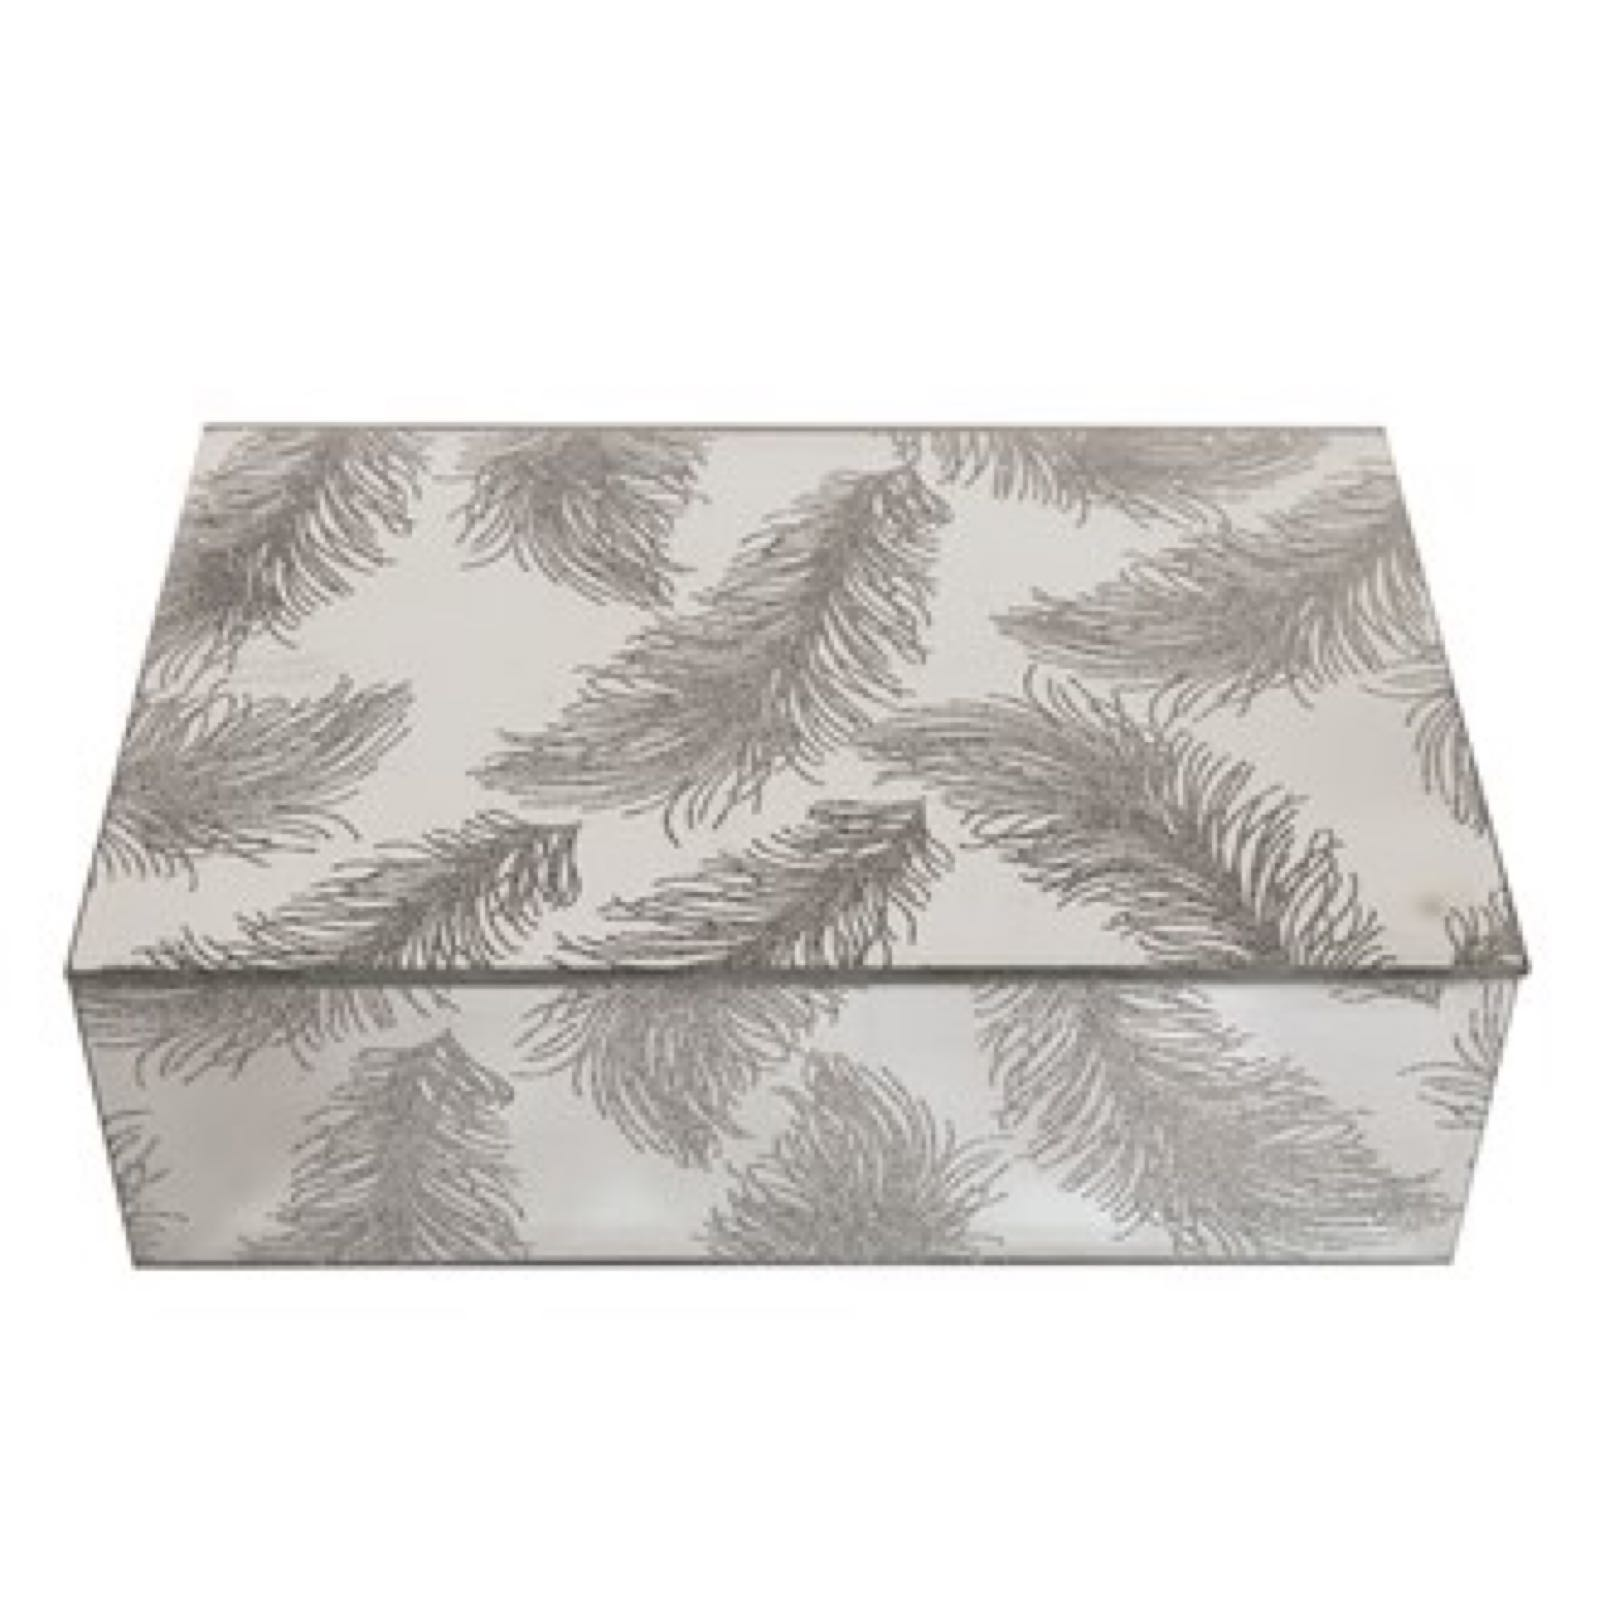 Straits feathered mirrored trinket box